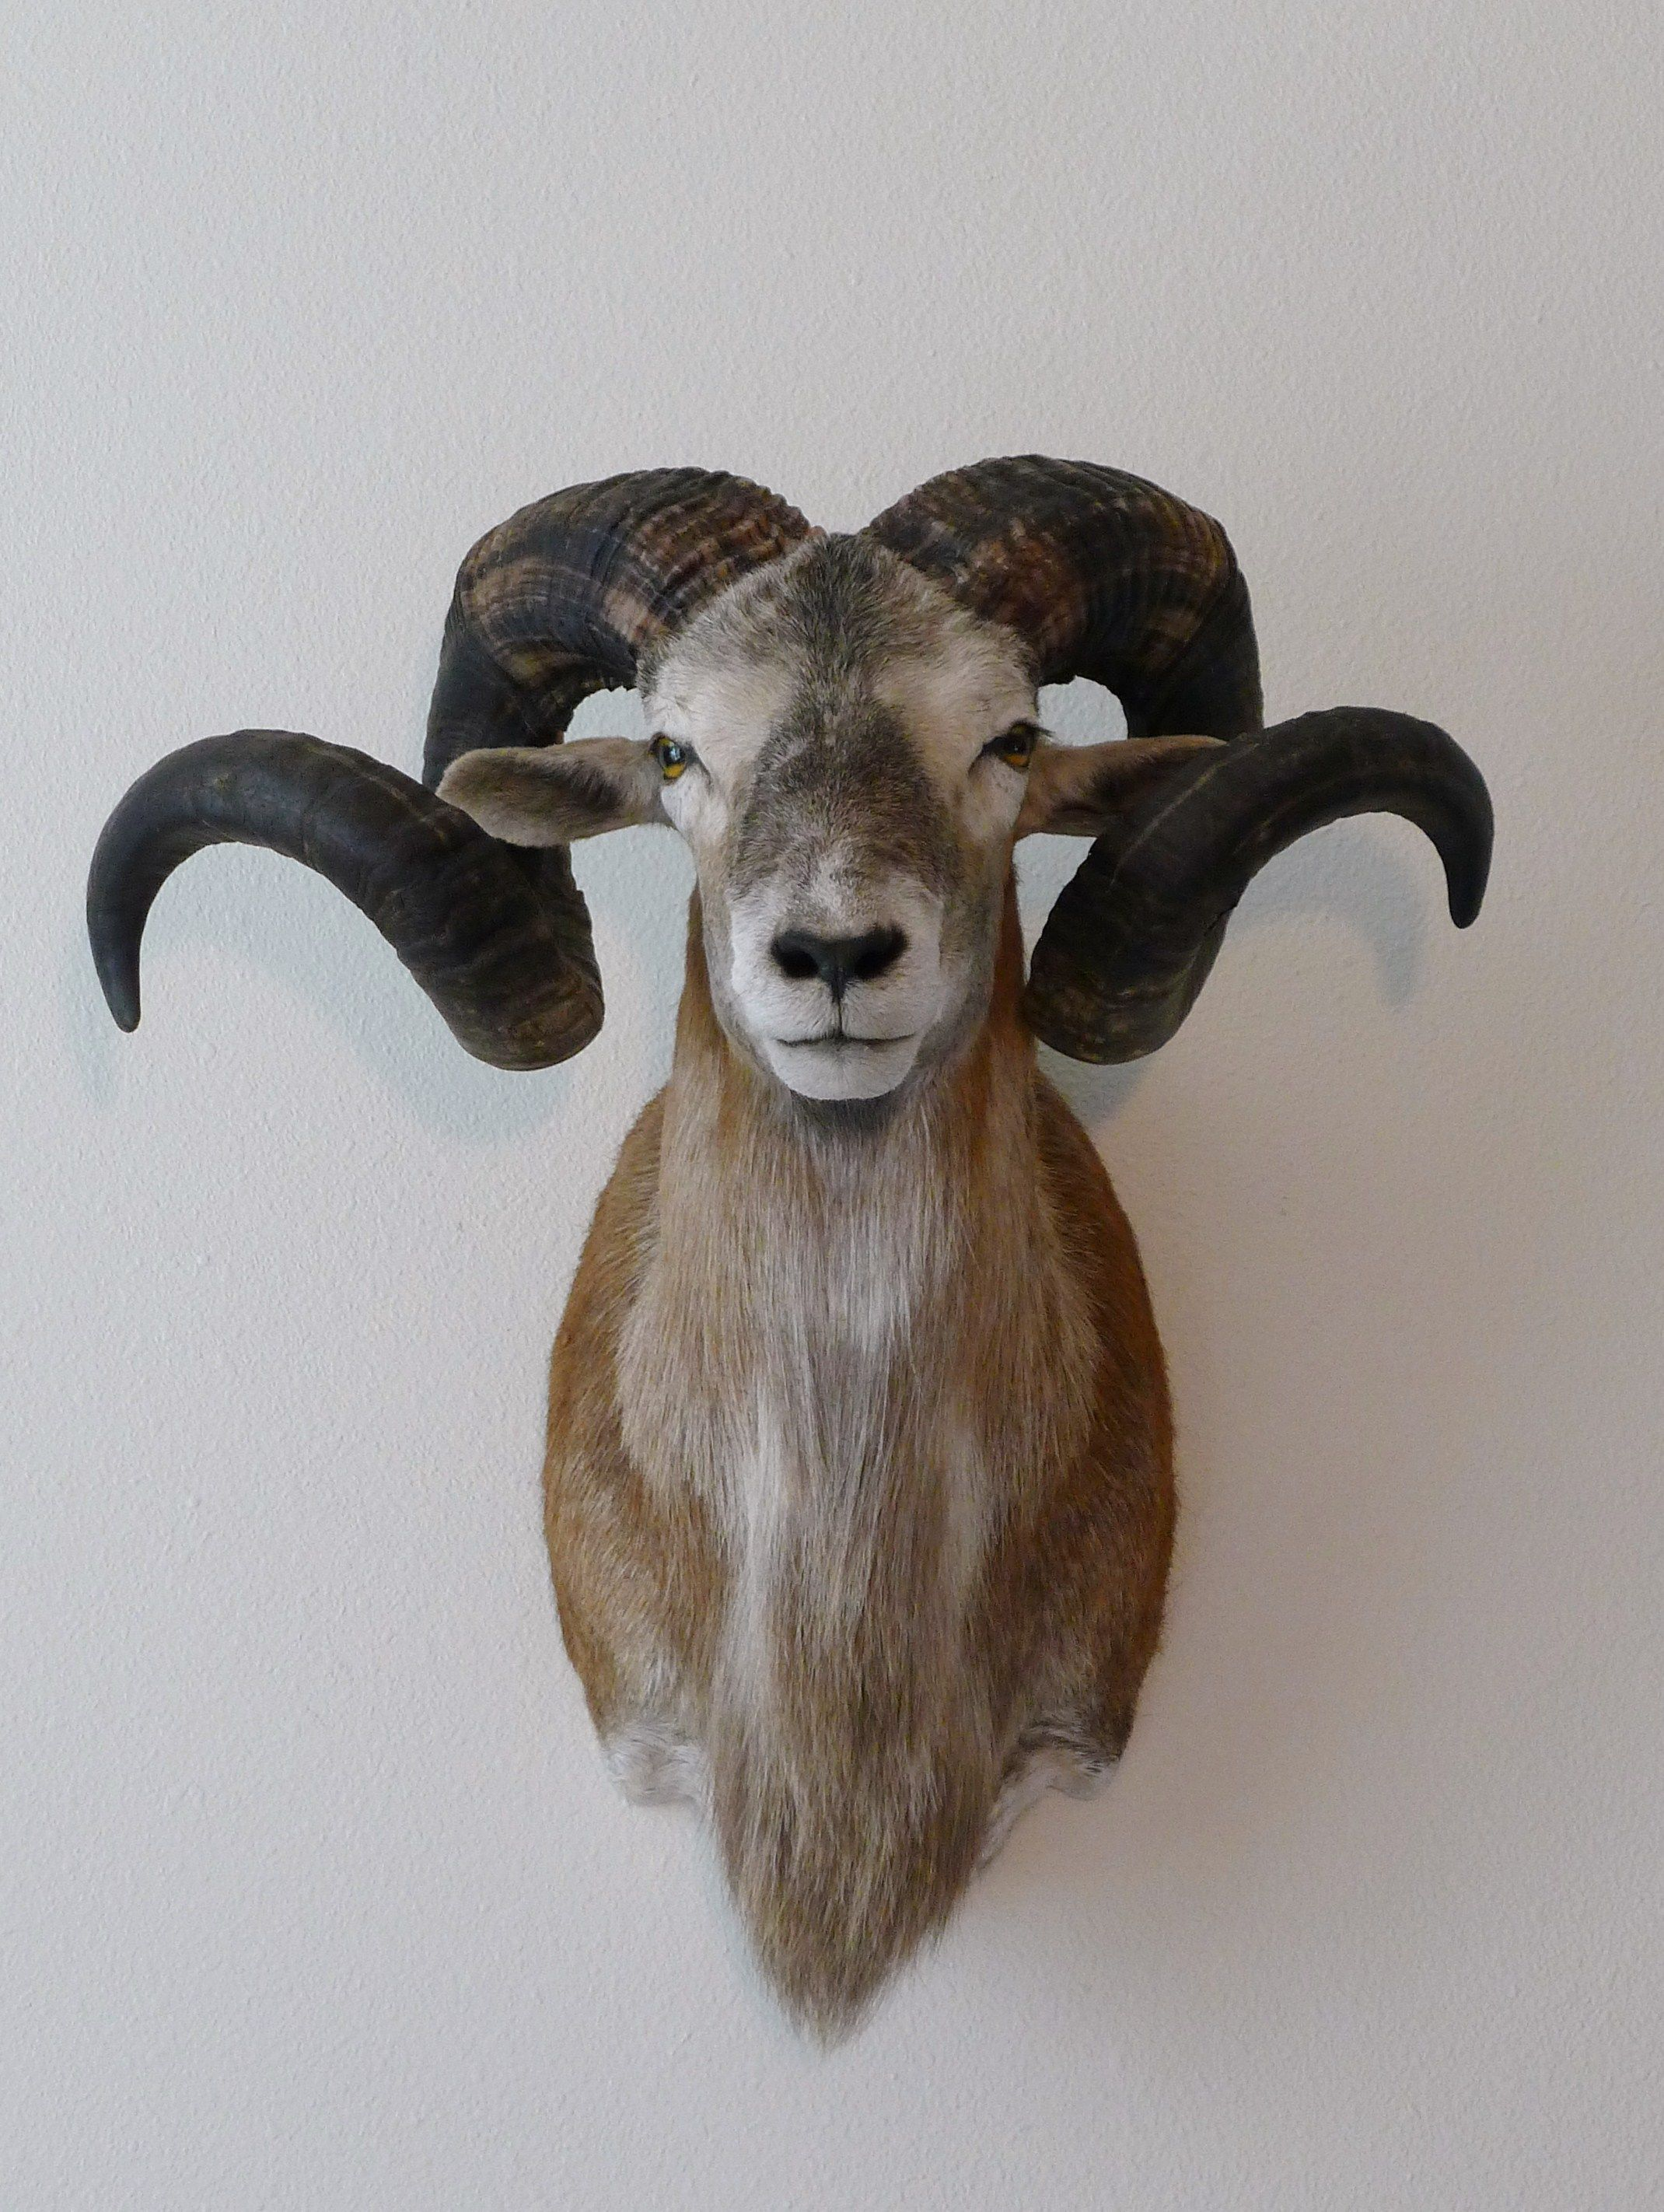 Images of ram animals displaying 20 images for ram animal room wall decor images of ram animals displaying 20 images for ram animal head amipublicfo Gallery